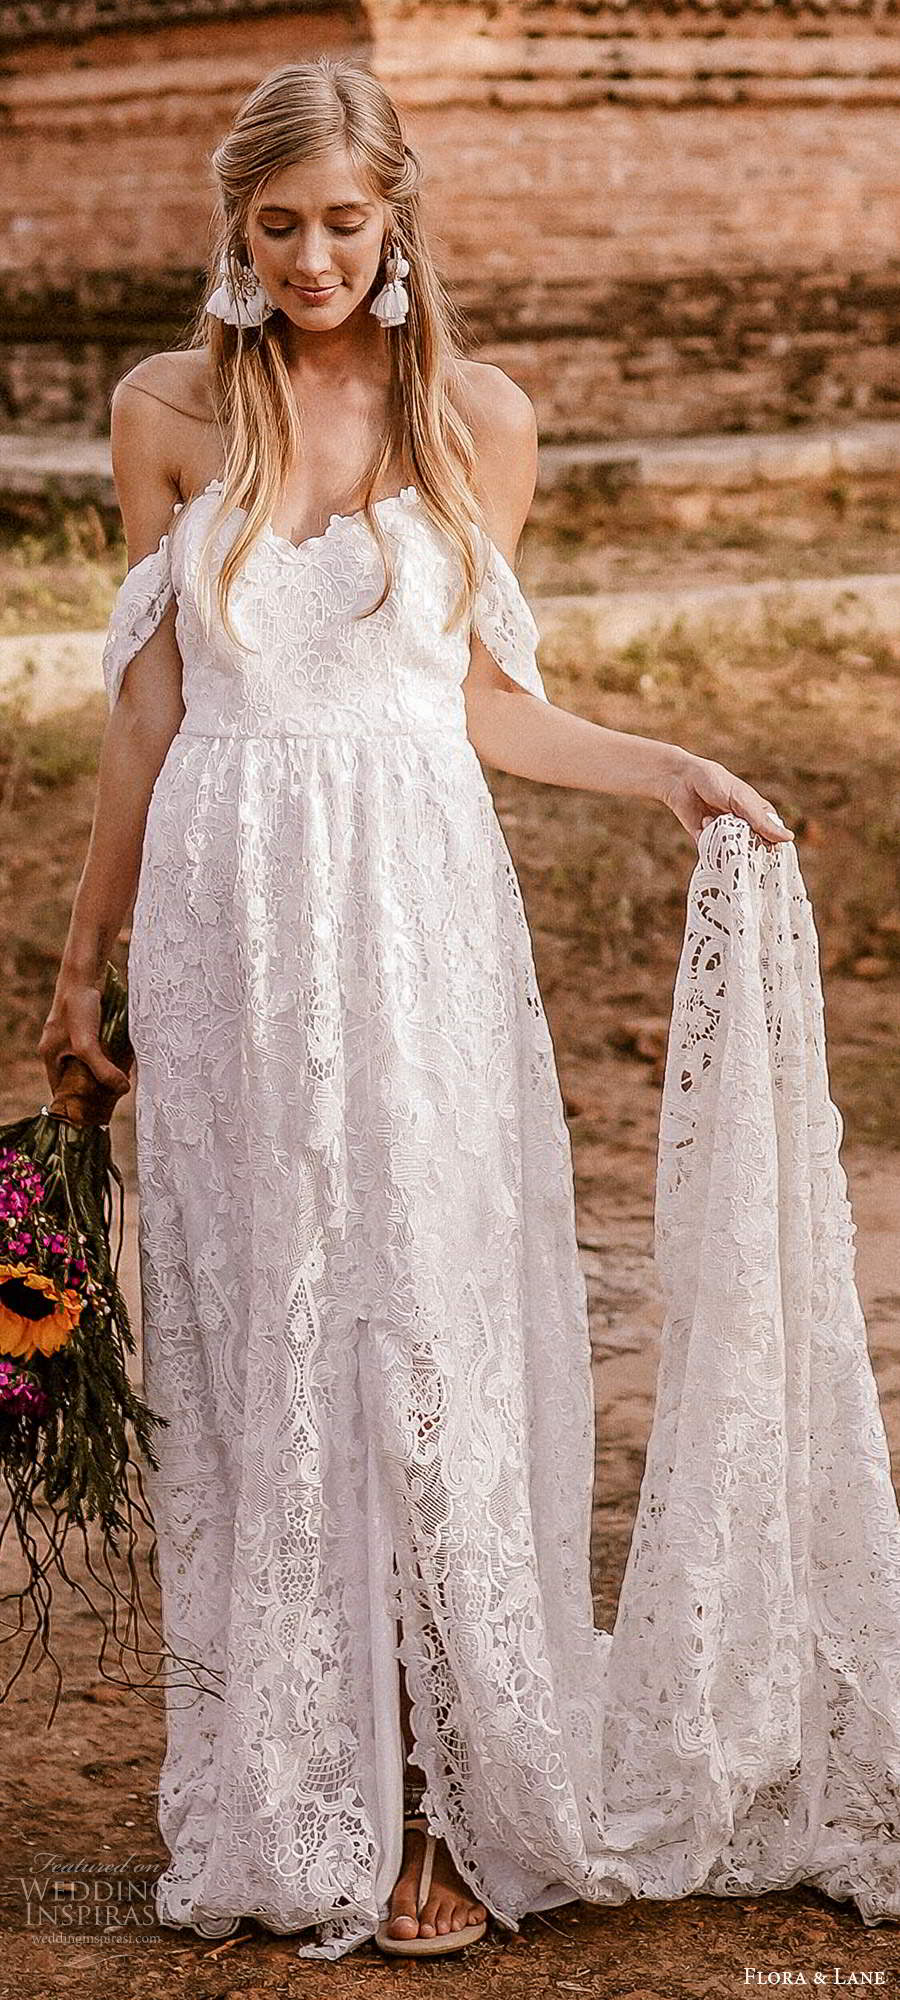 flora and lane 2019 bridal off shoulder straps sweetheart neckline fully embellished lace romantic boho ball gown a line wedding dress slit skirt cathedral train (6) lv